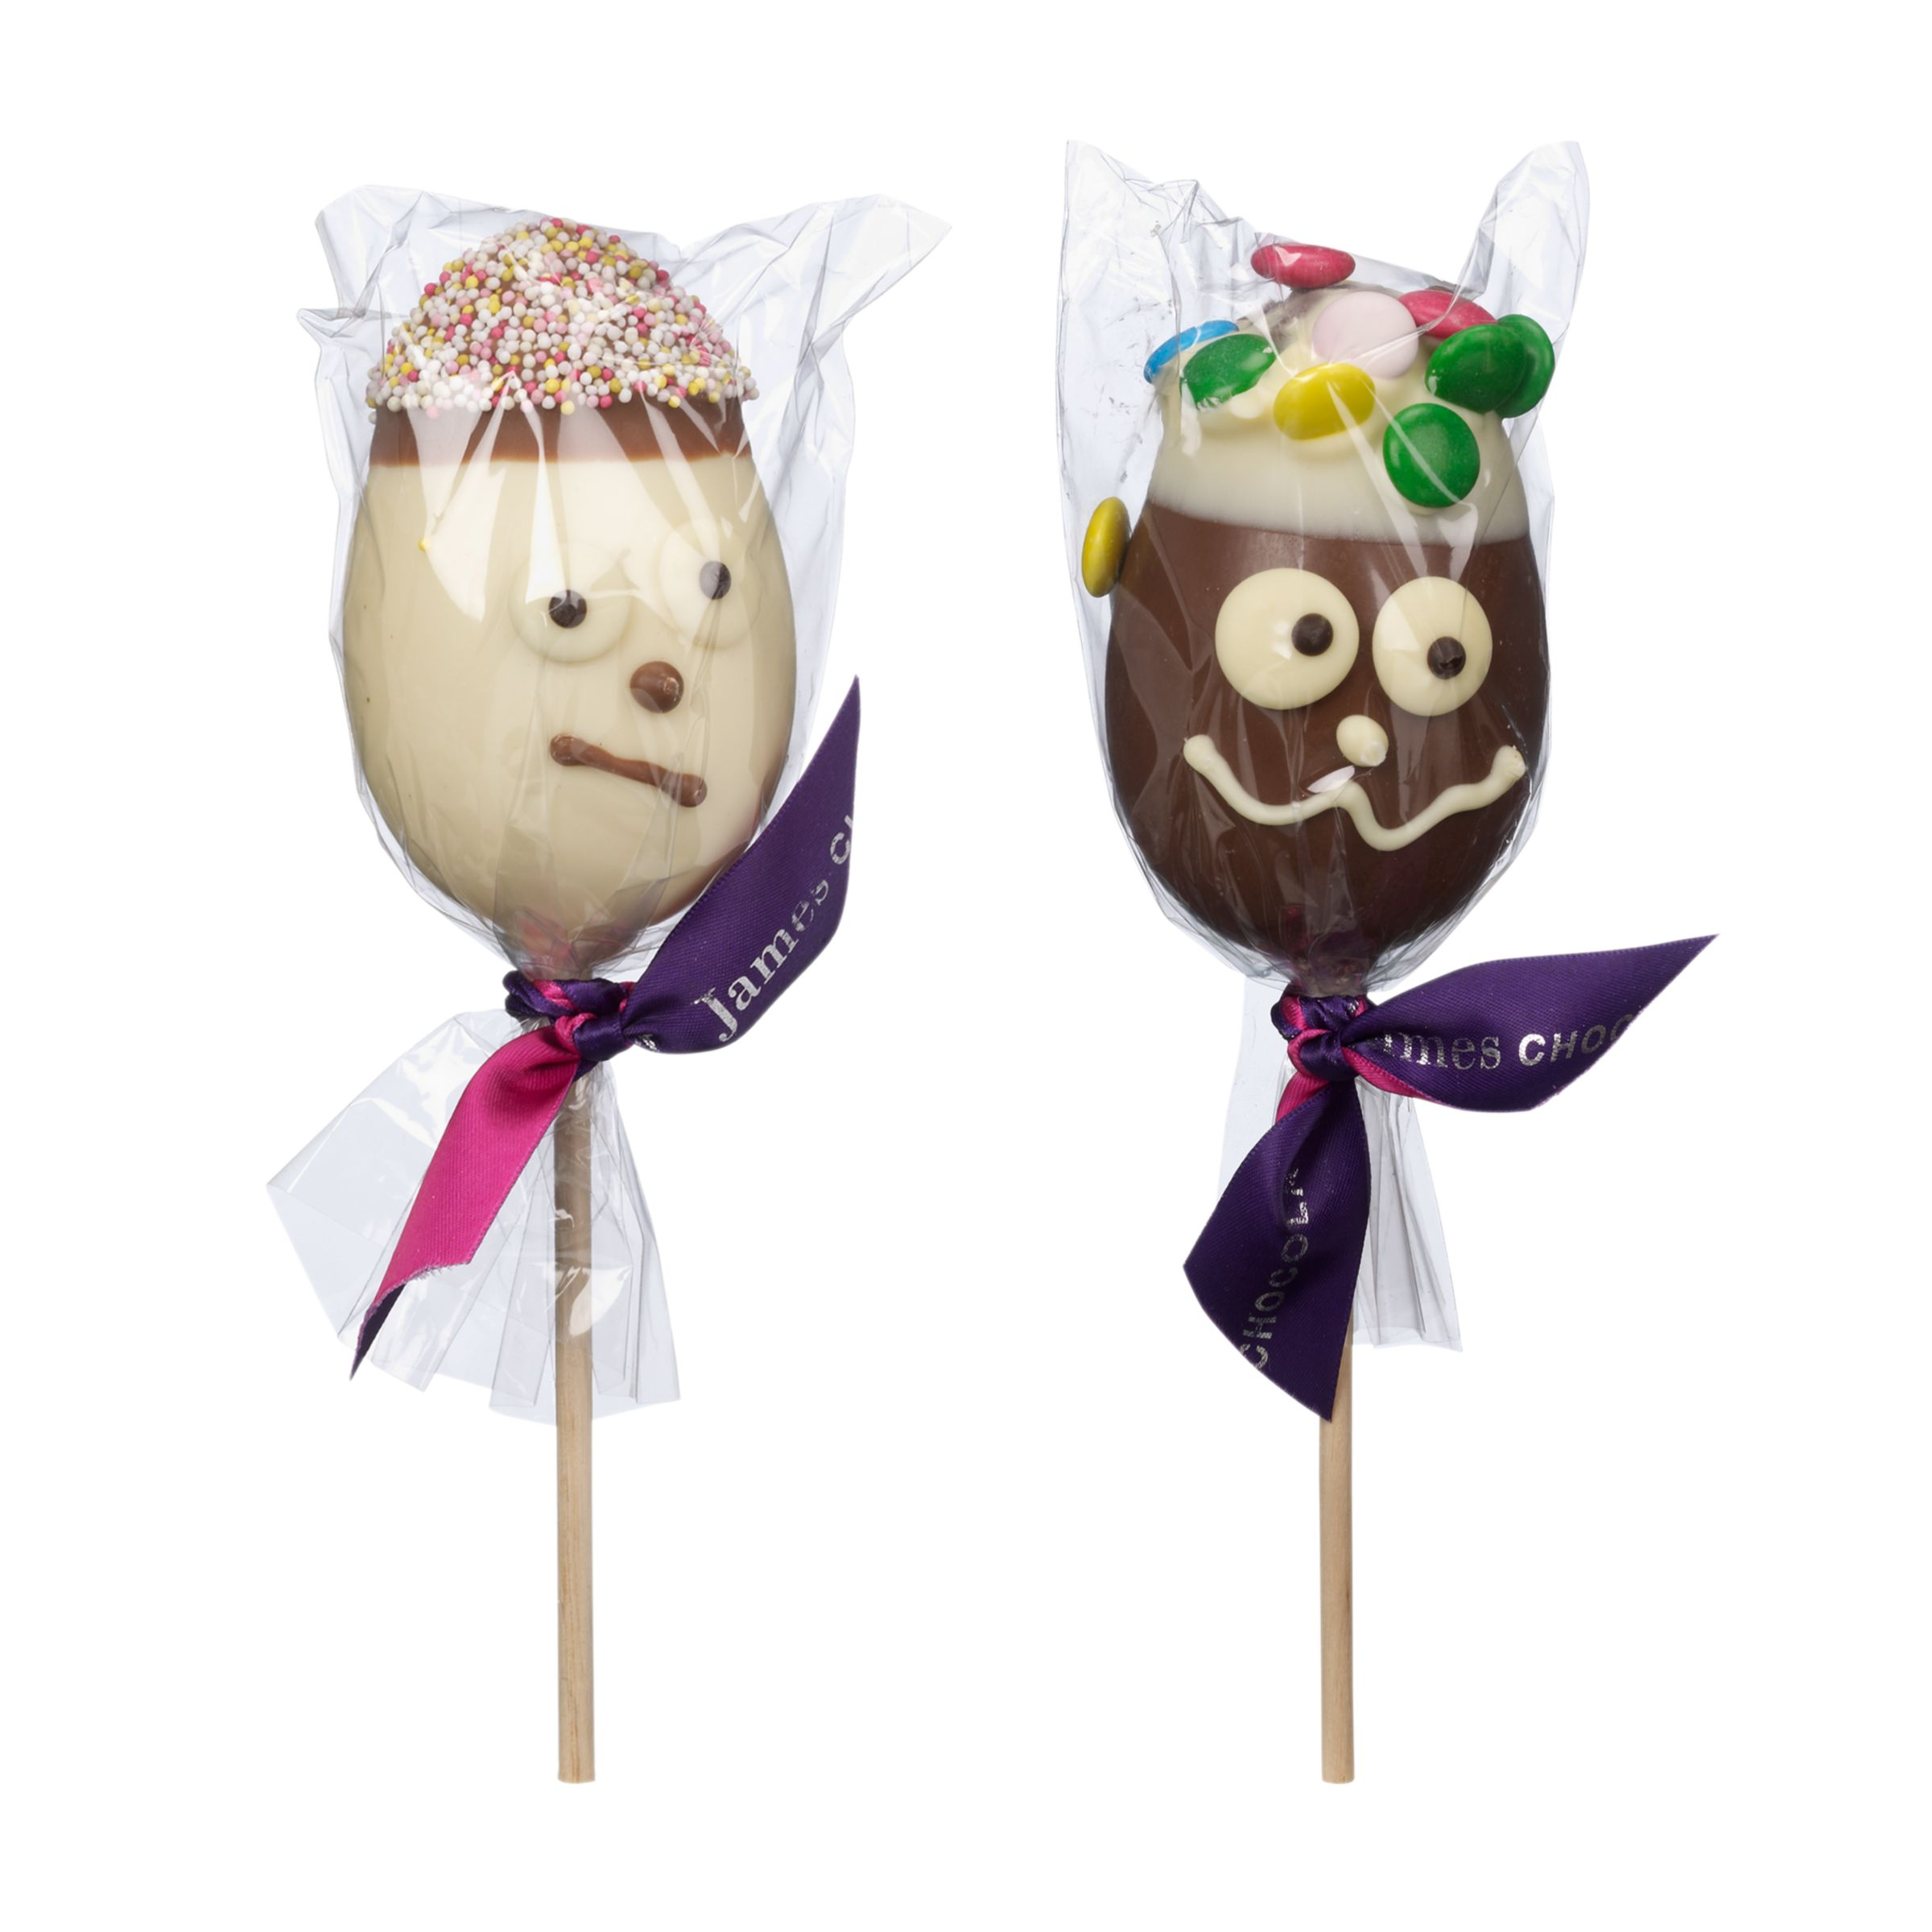 James Chocolates Face Chocolate Eggs On Sticks, 60g